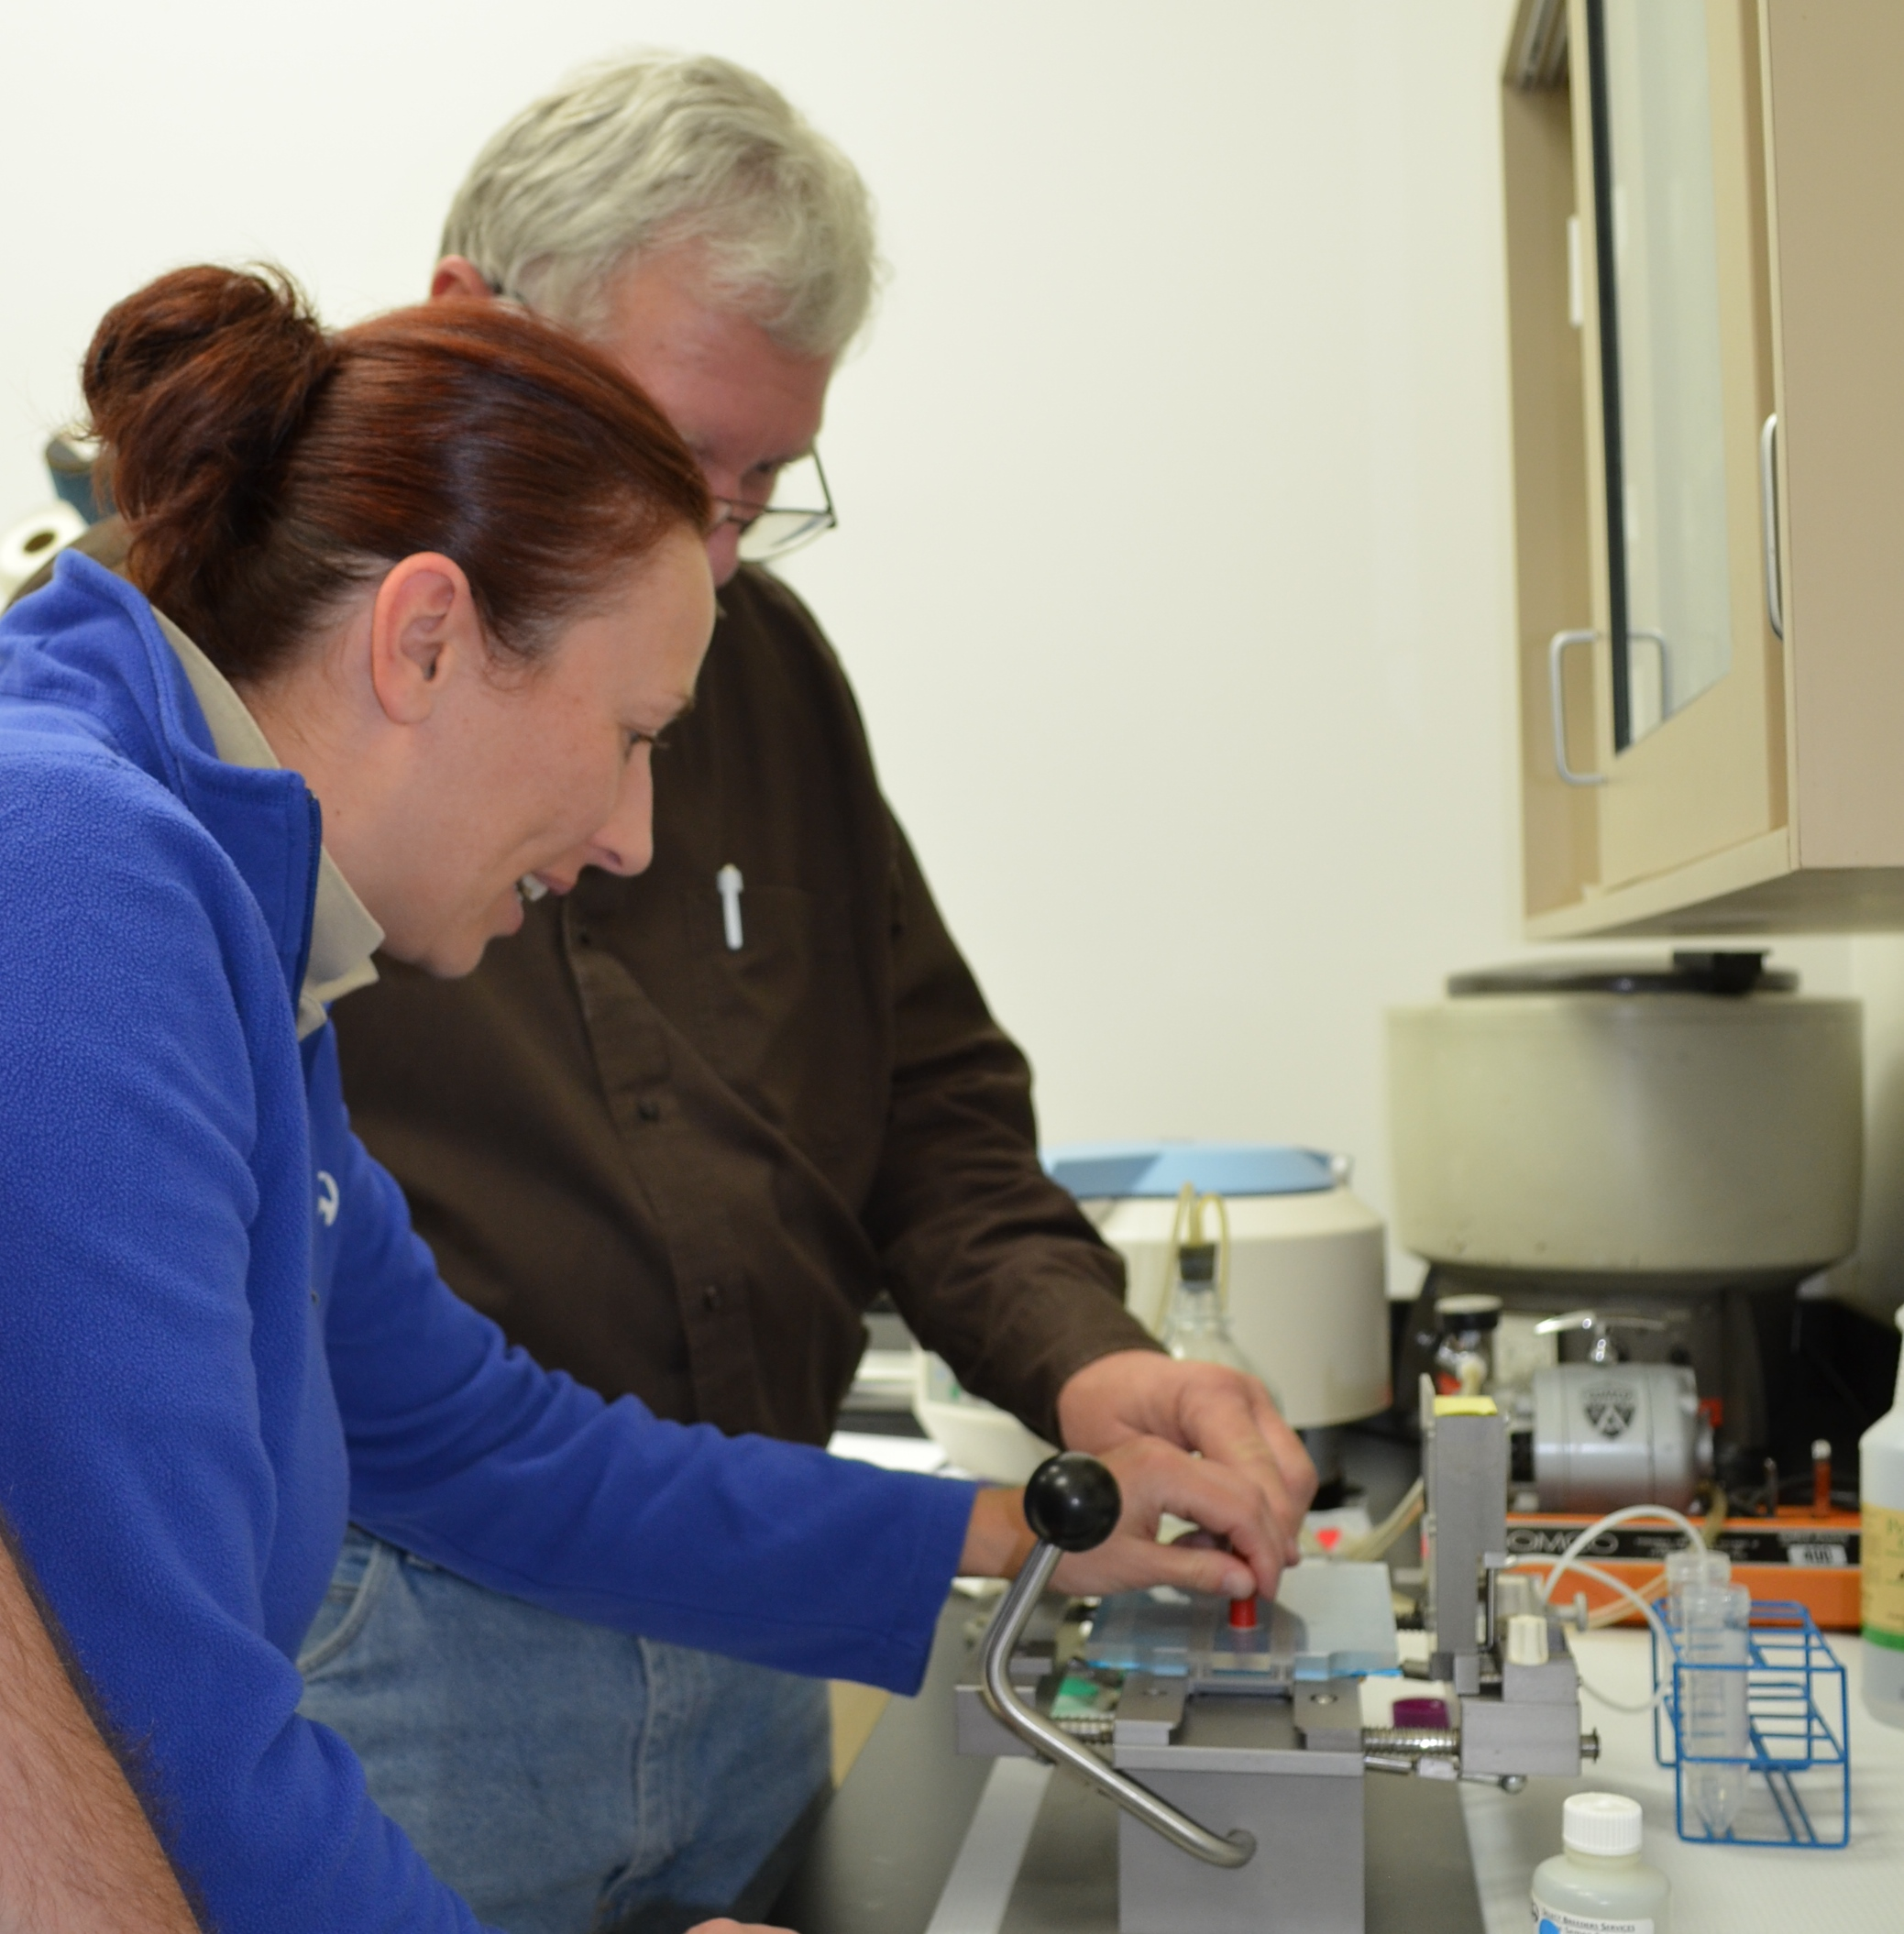 Julie Skaife_working in lab